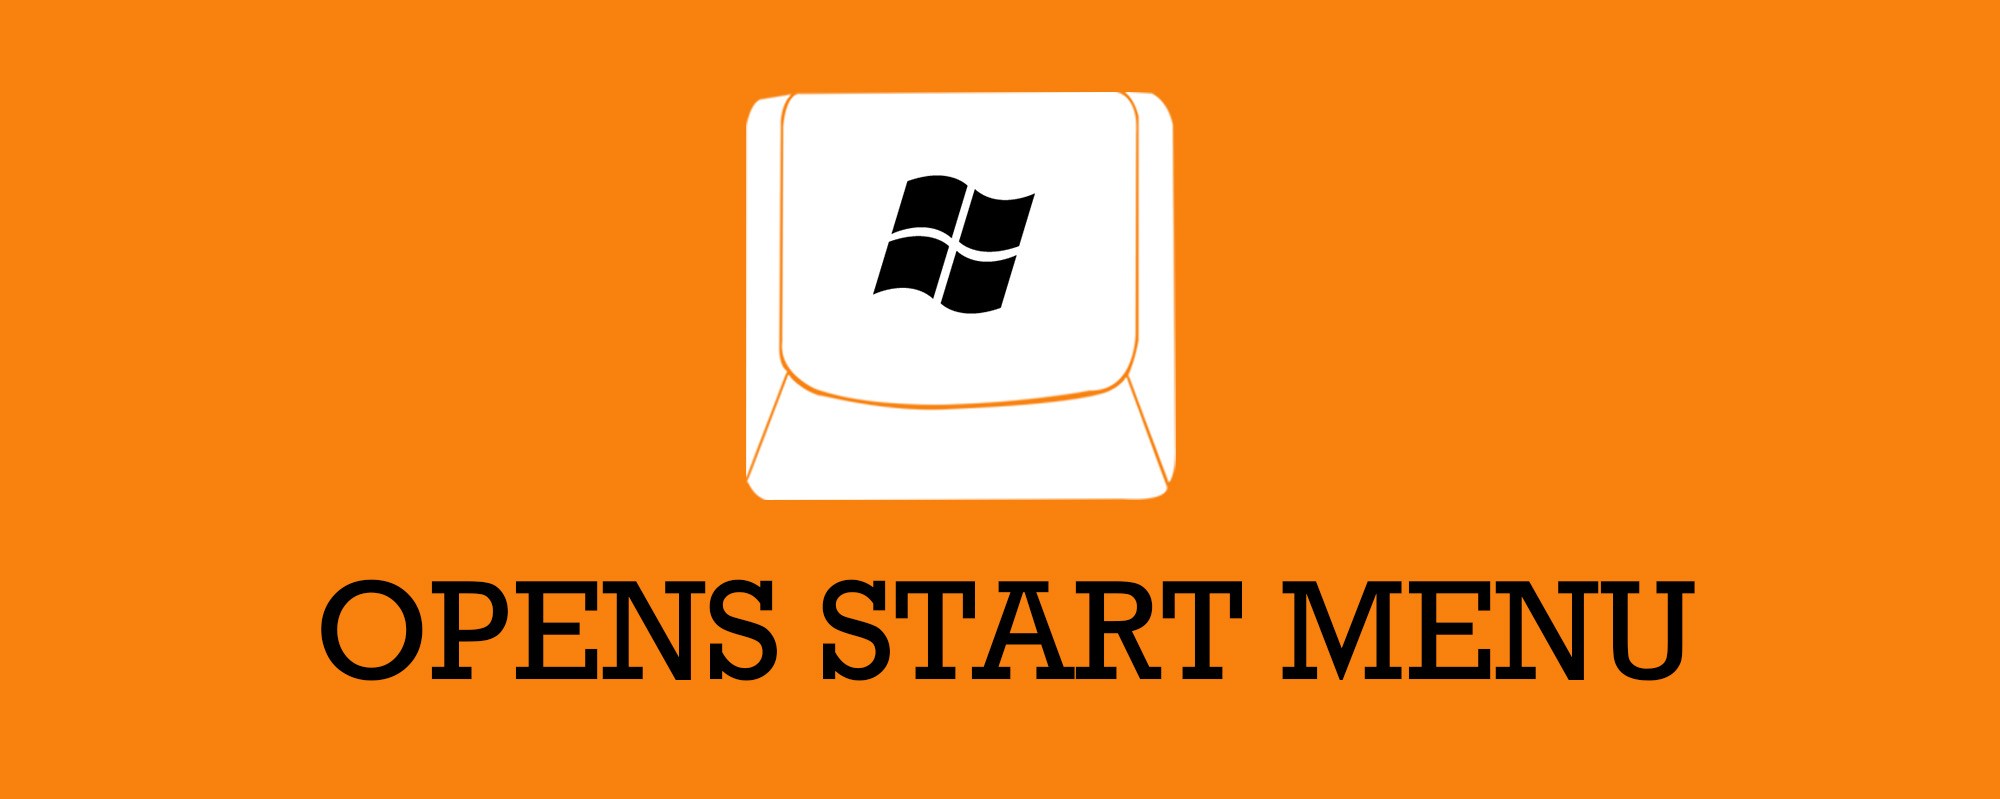 The start menu opens in Windows 8 when you use the windows key